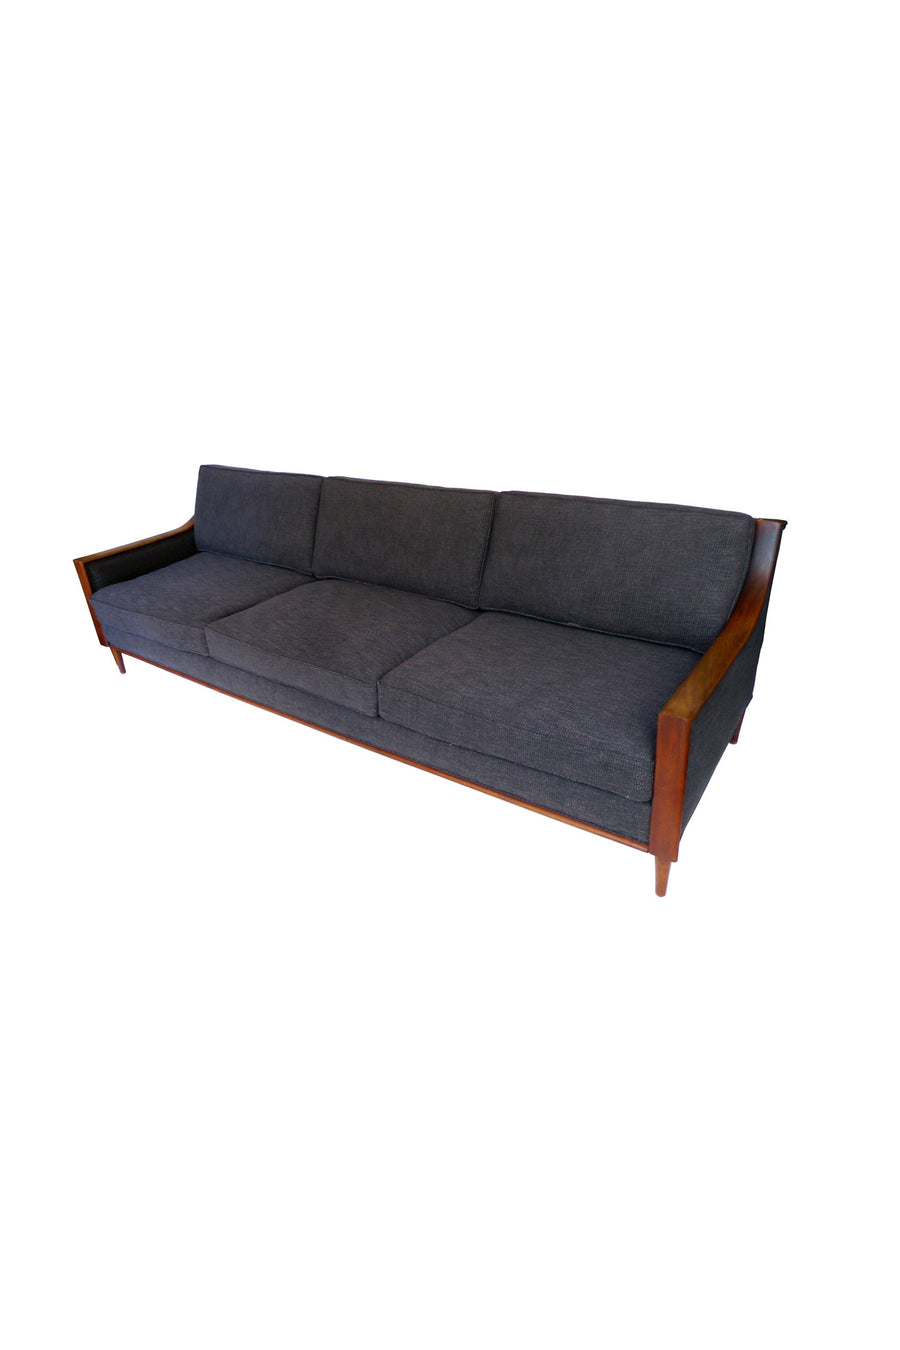 Midcentury Scandinavian Sofa in the Style of Arne Vodder